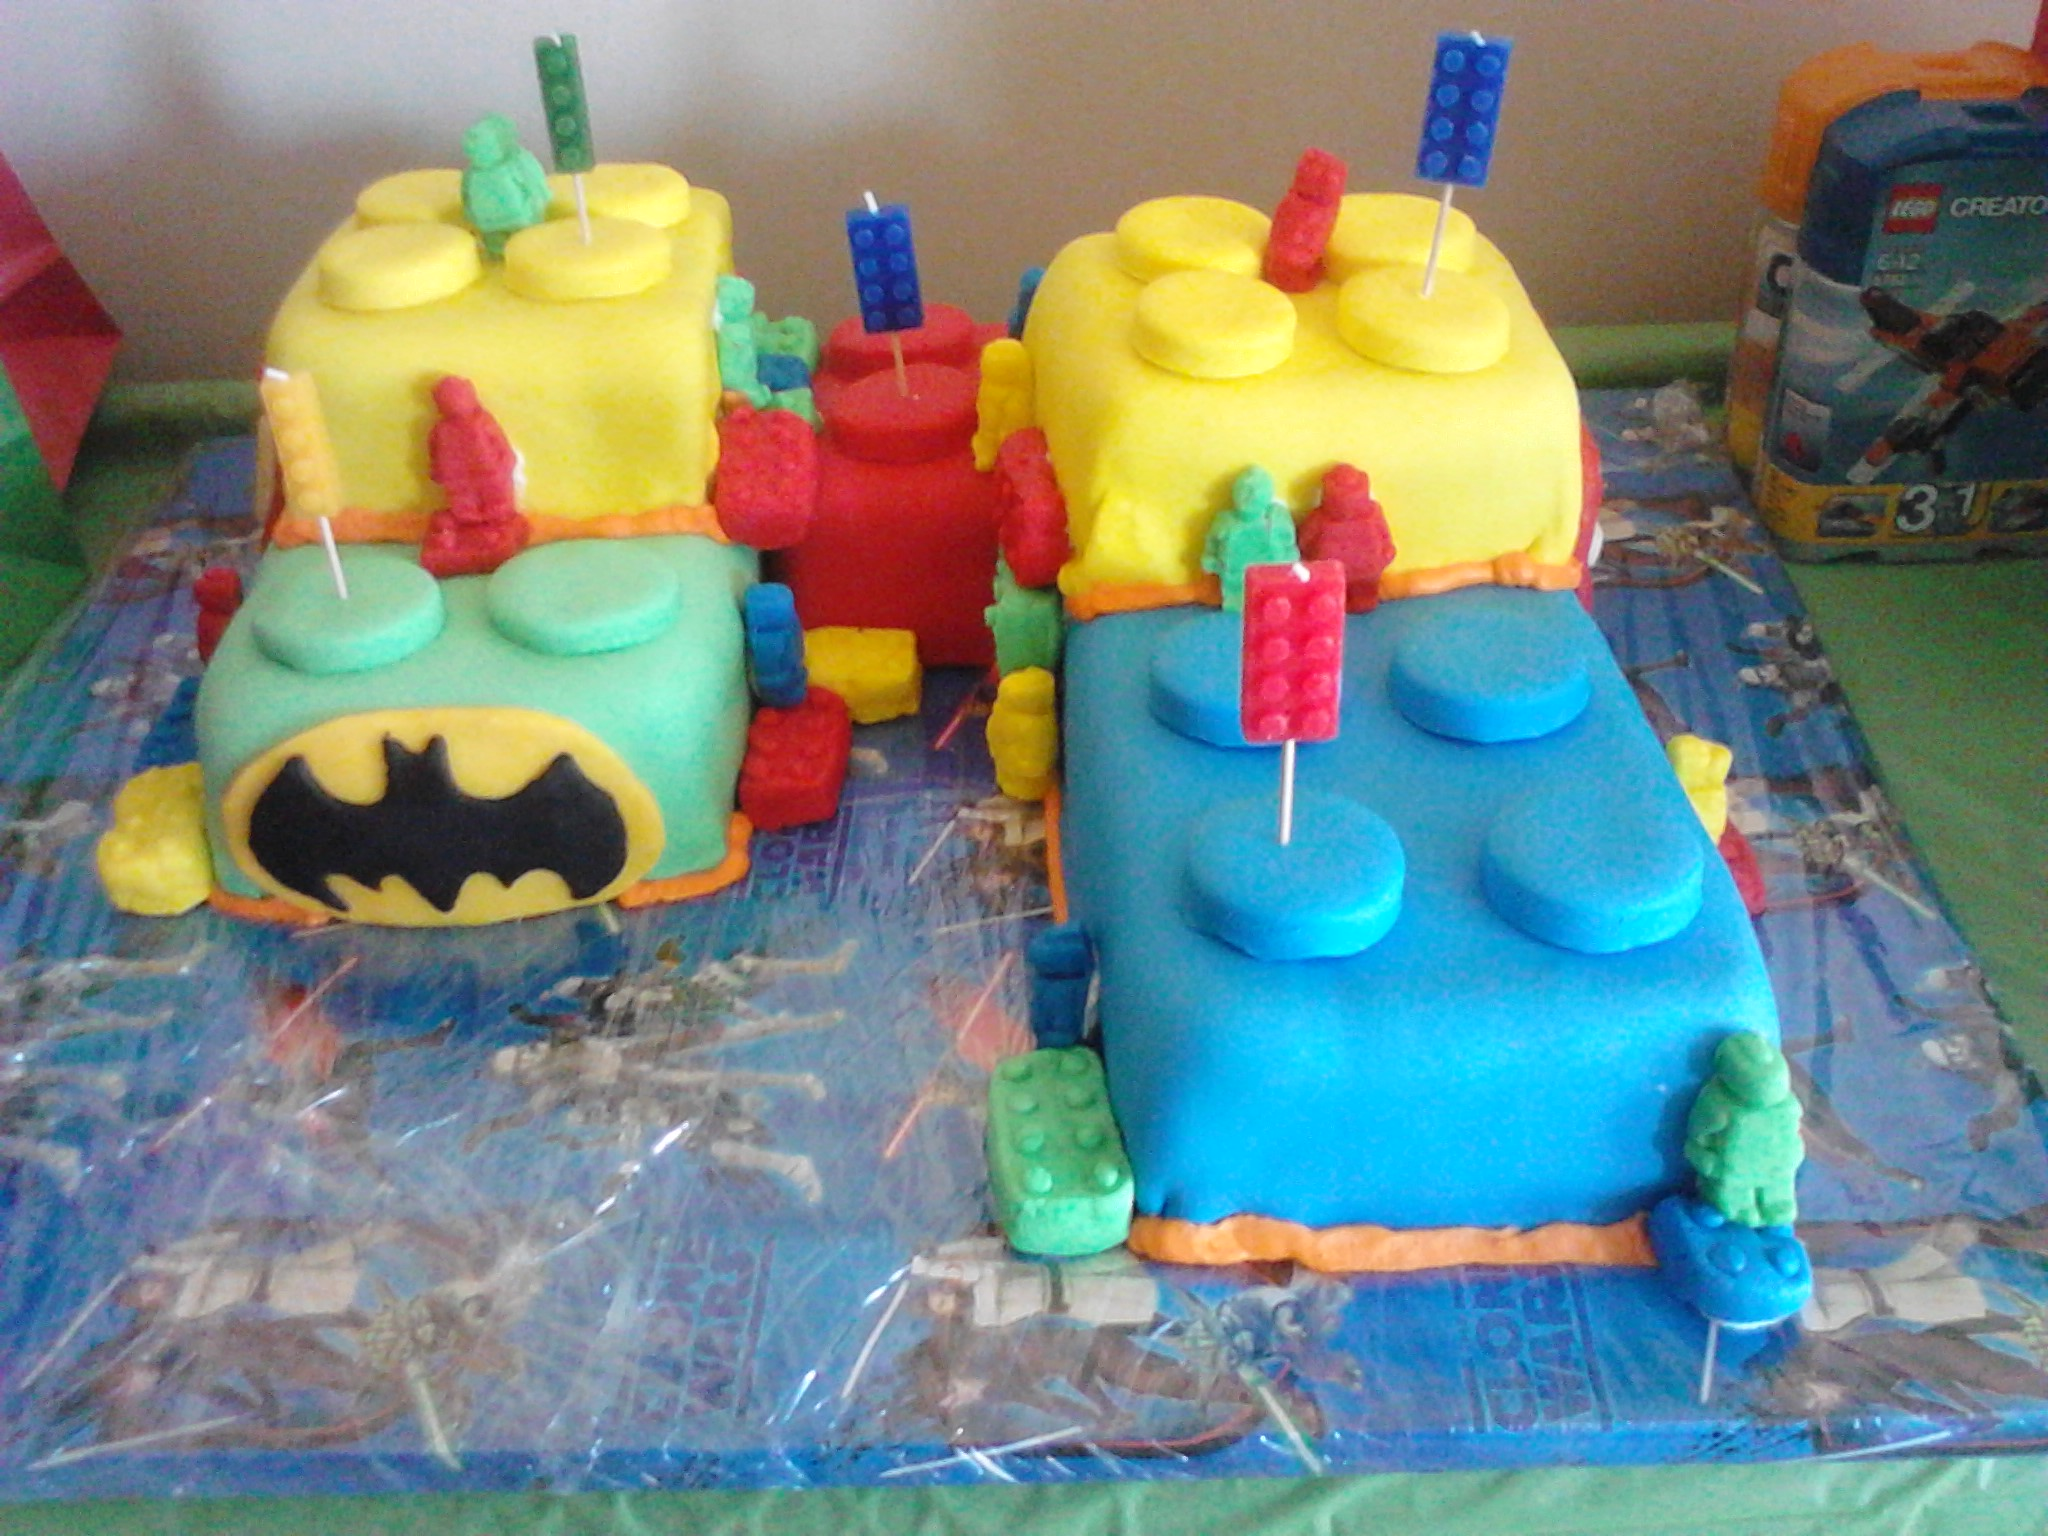 Lego Cake The Mad Cakerthe Mad Caker